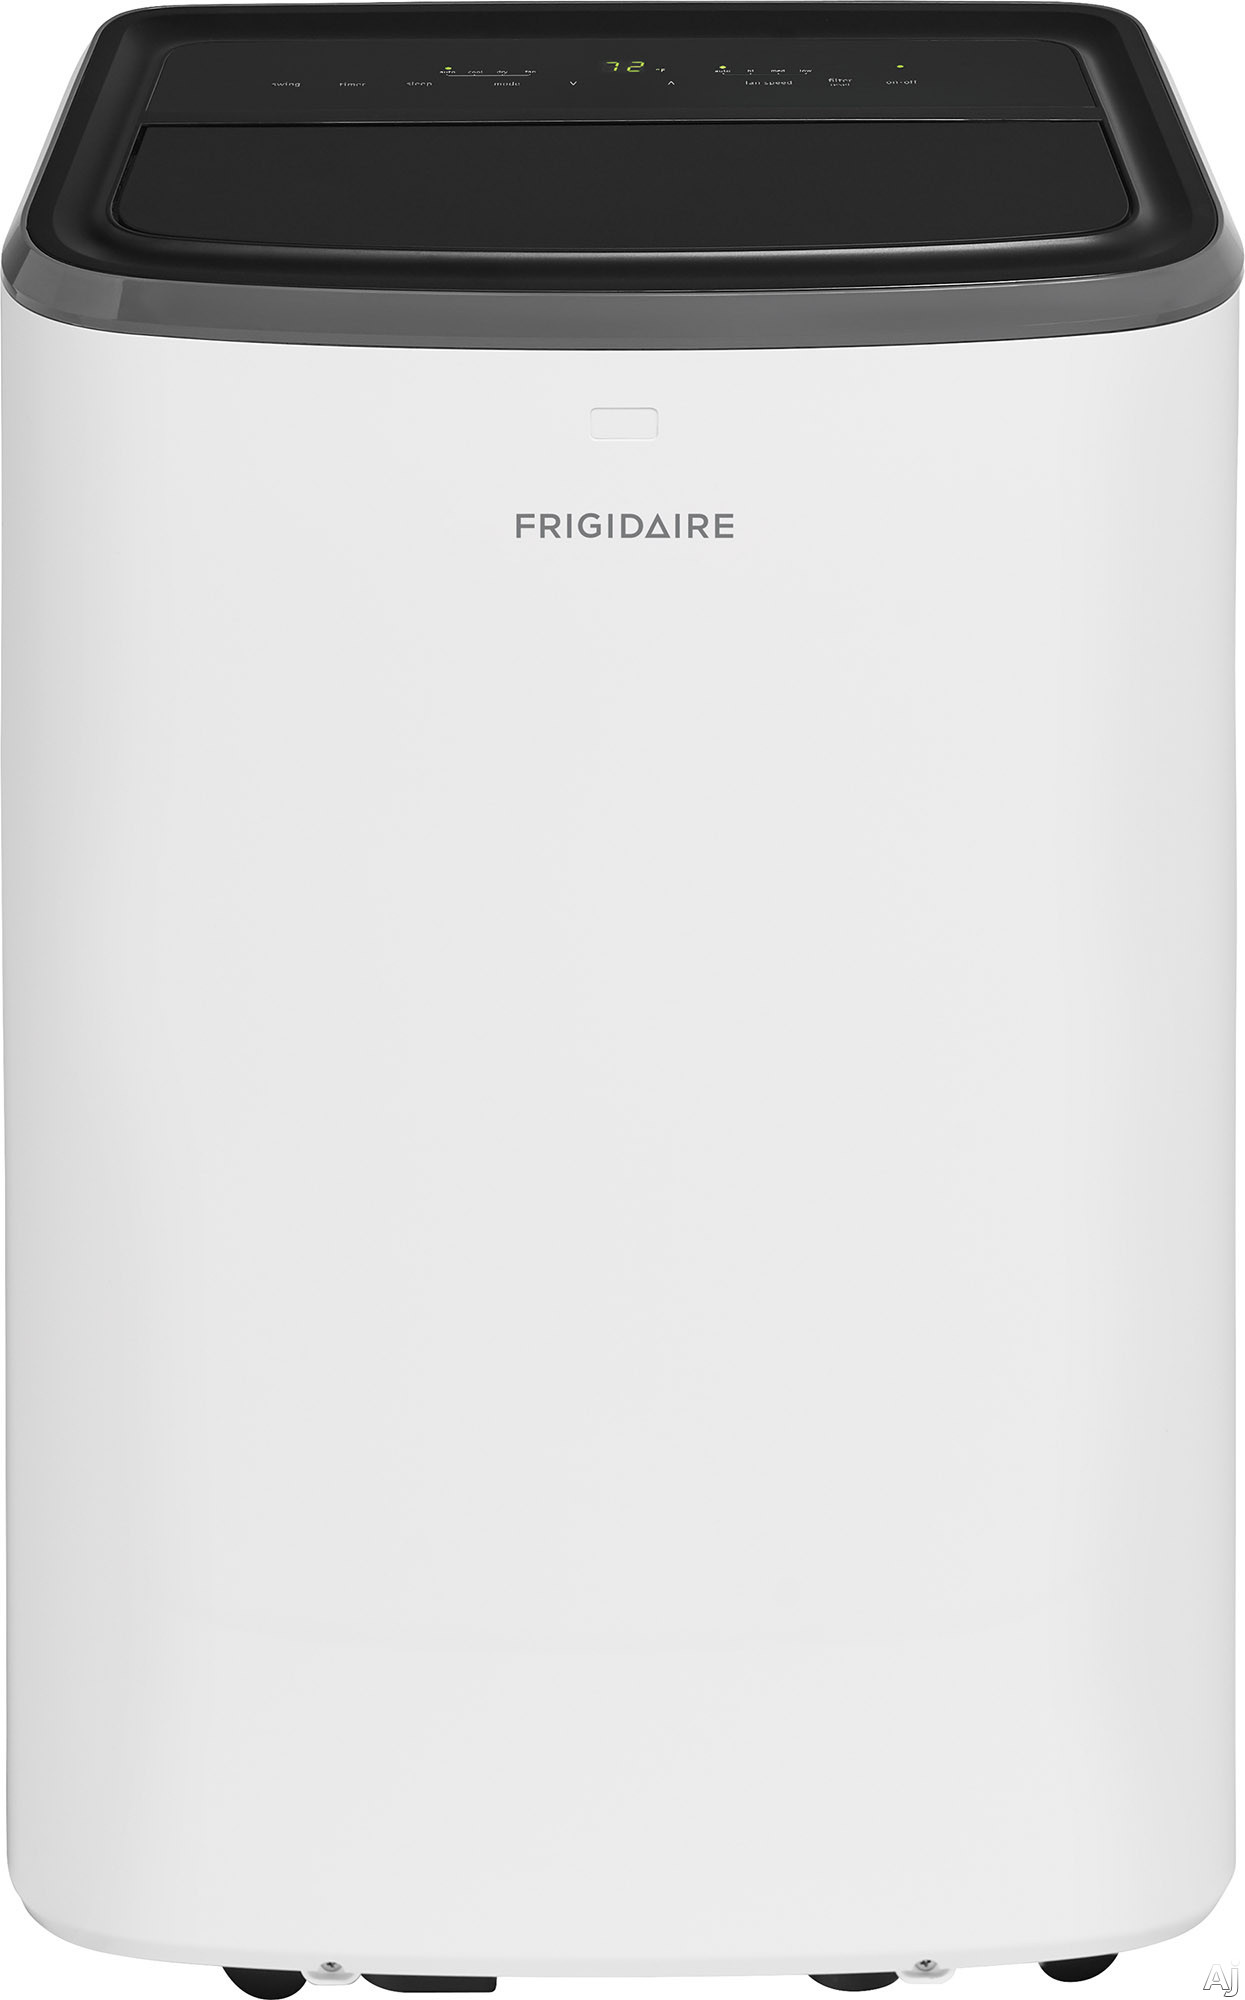 Frigidaire FFPA1022U1 10,000 BTU Portable Room Air Conditioner with SpaceWise® Portable Design, Effortless™ Temperature Control, Effortless™ Clean Filter, Effortless™ Restart, Sle